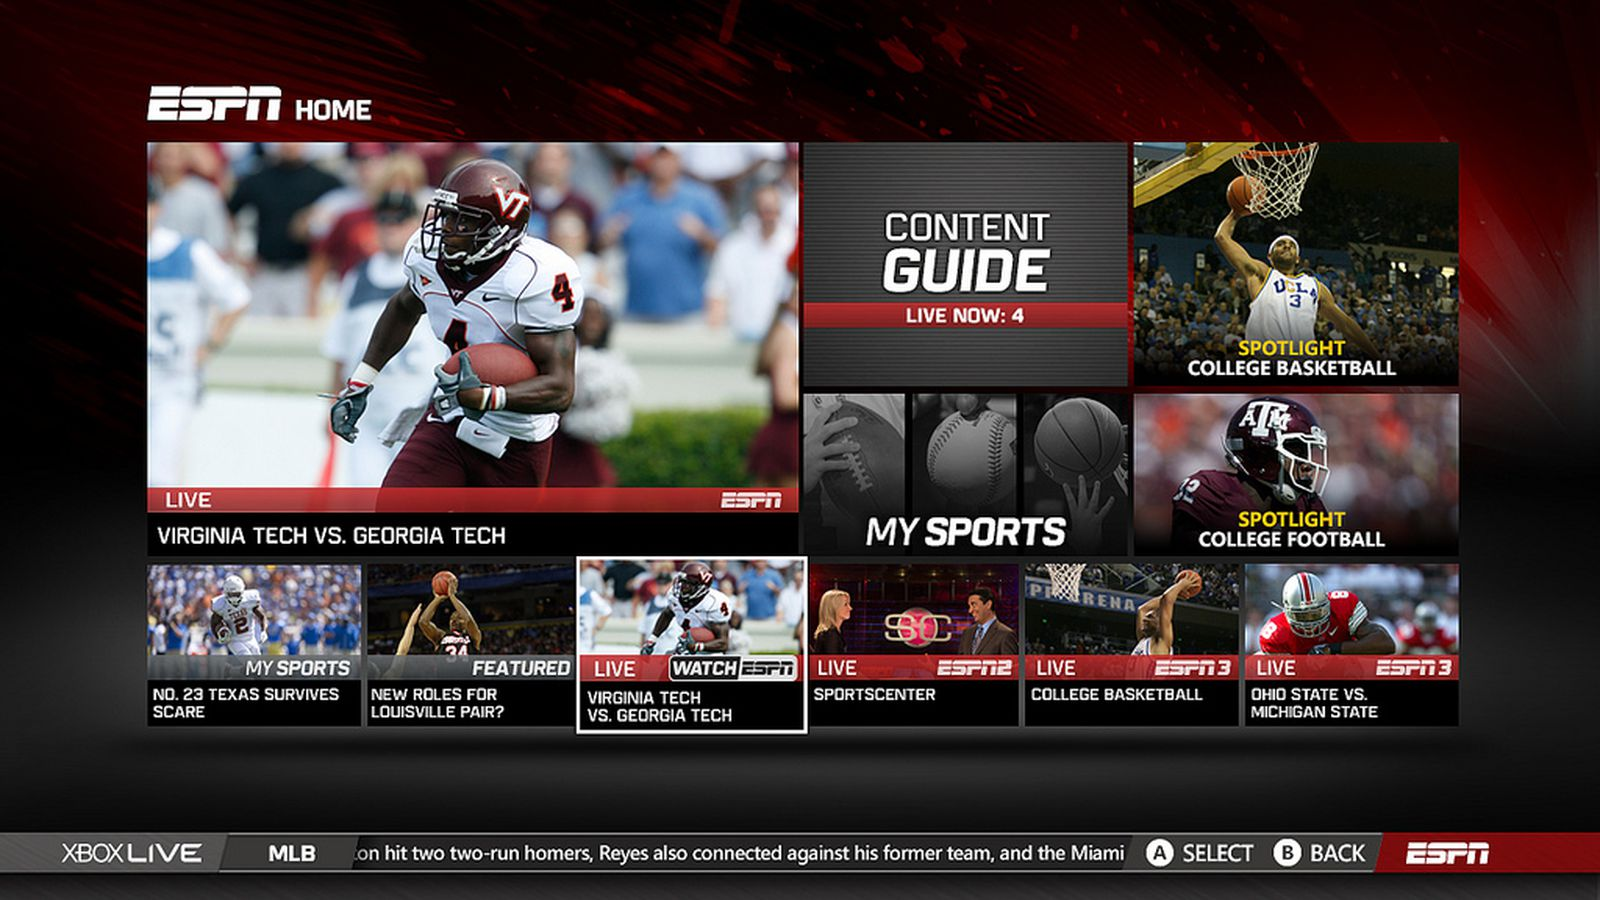 Espn2 On Dish >> ESPN app on Xbox 360 updated with all live ESPN programming - Polygon